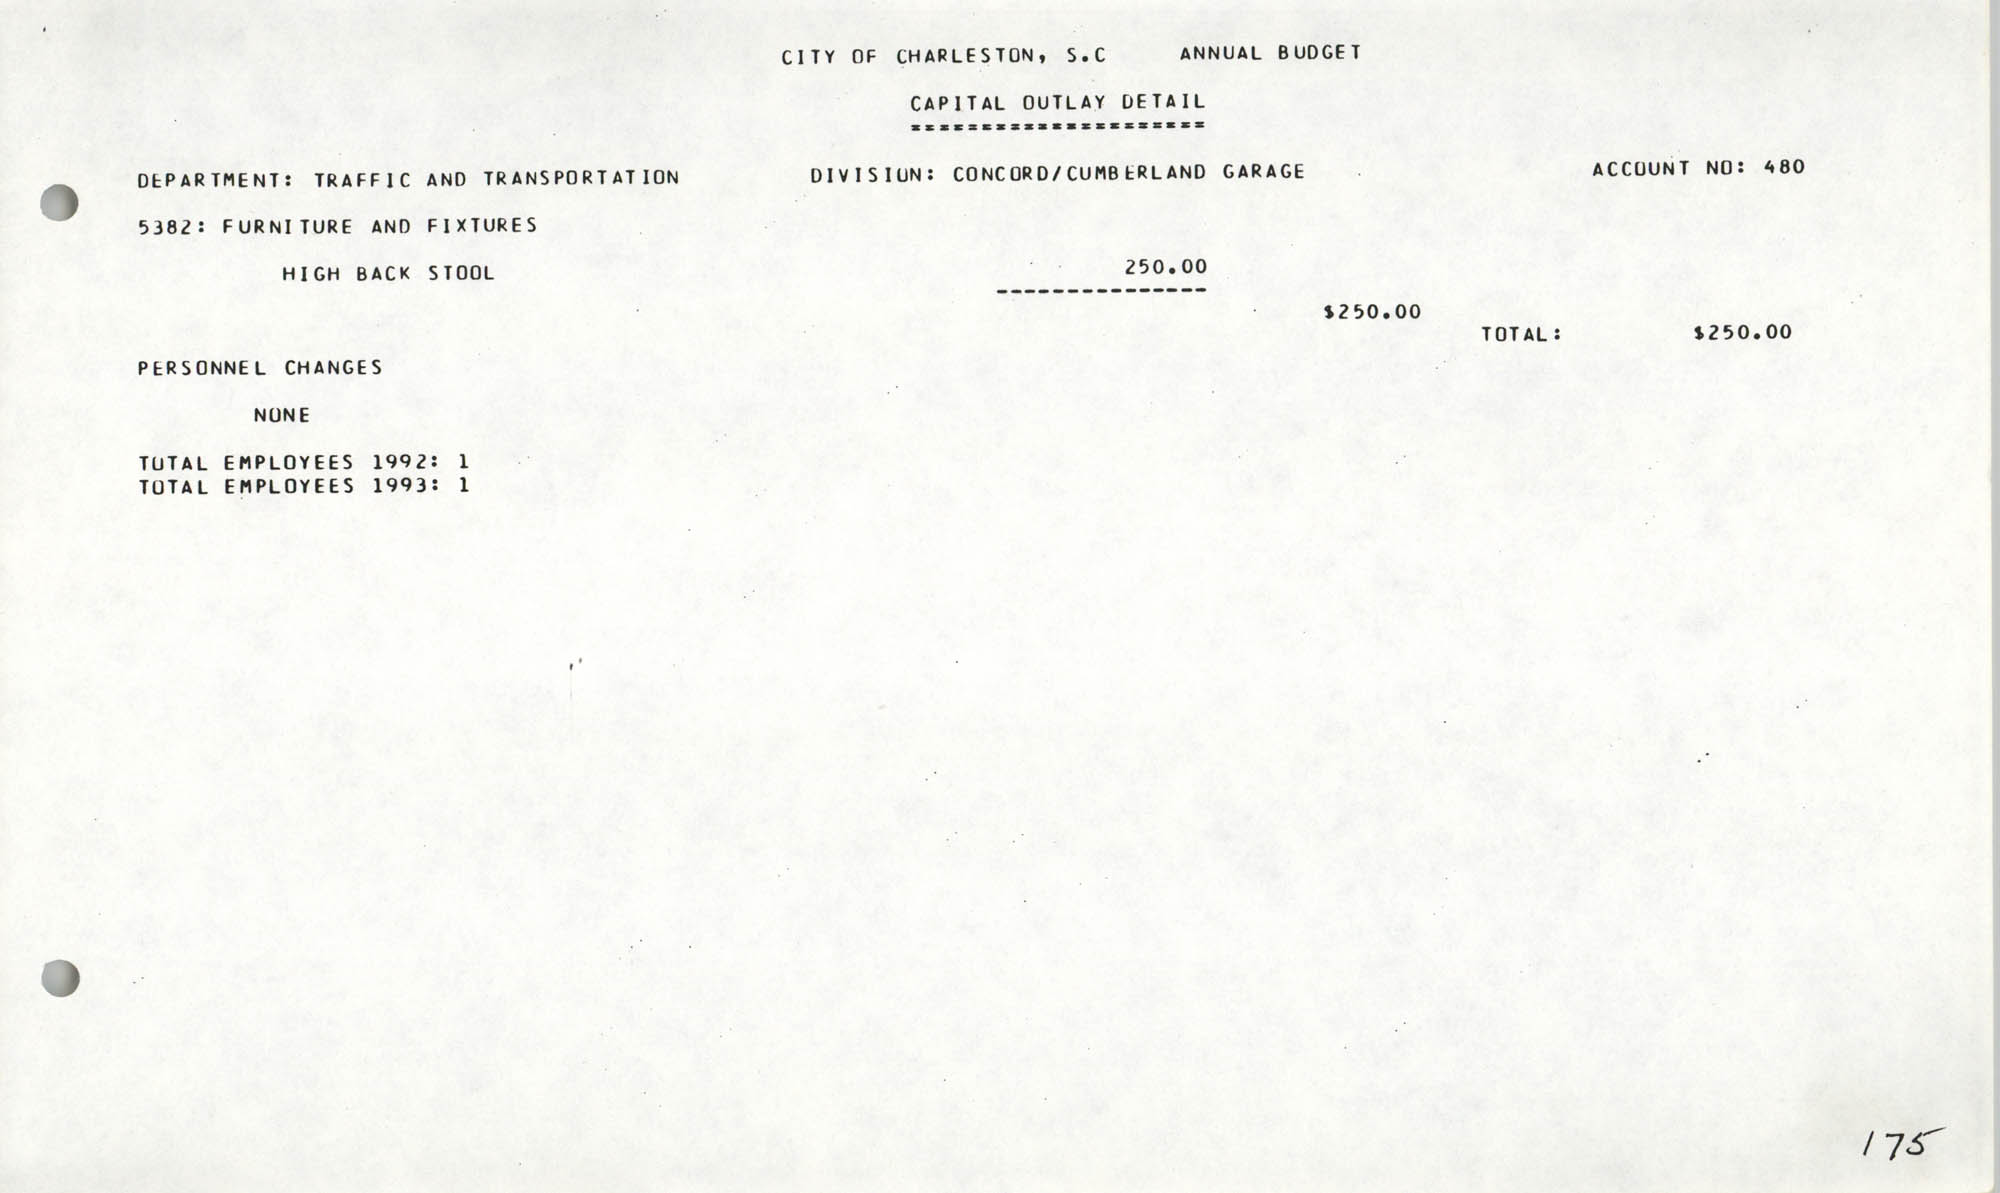 The City Council of Charleston, South Carolina, 1993 Budget, Page 175